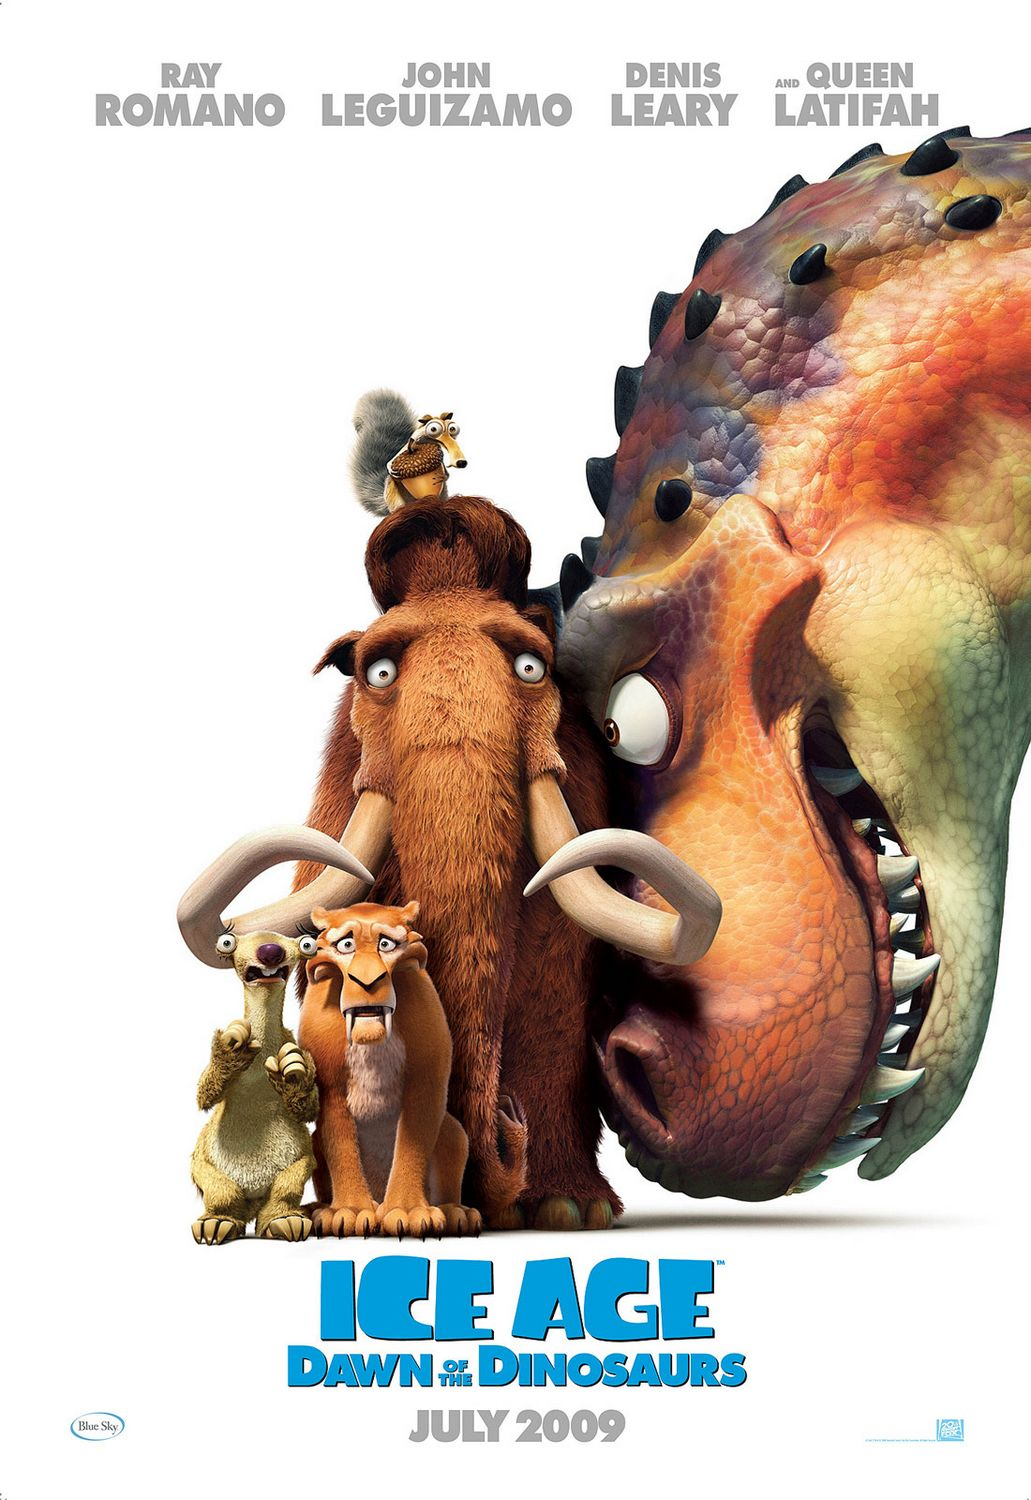 Ice Age 3 - Alba dei Dinosauri (Dawn of the Dinosaurs) - film poster